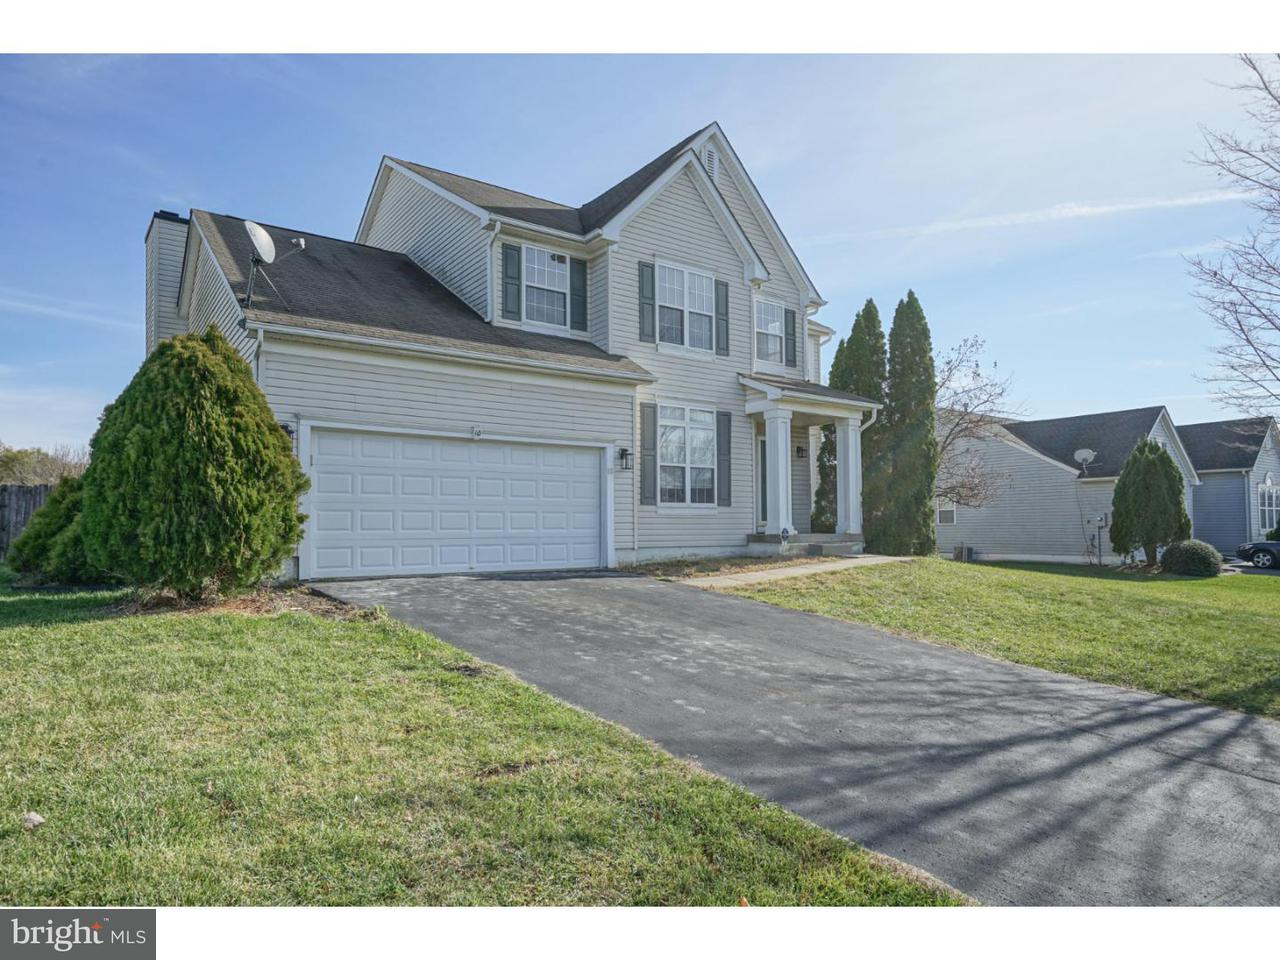 Single Family Home for Sale at 10 QUINCY MANOR Lane Burlington Township, New Jersey 08016 United States